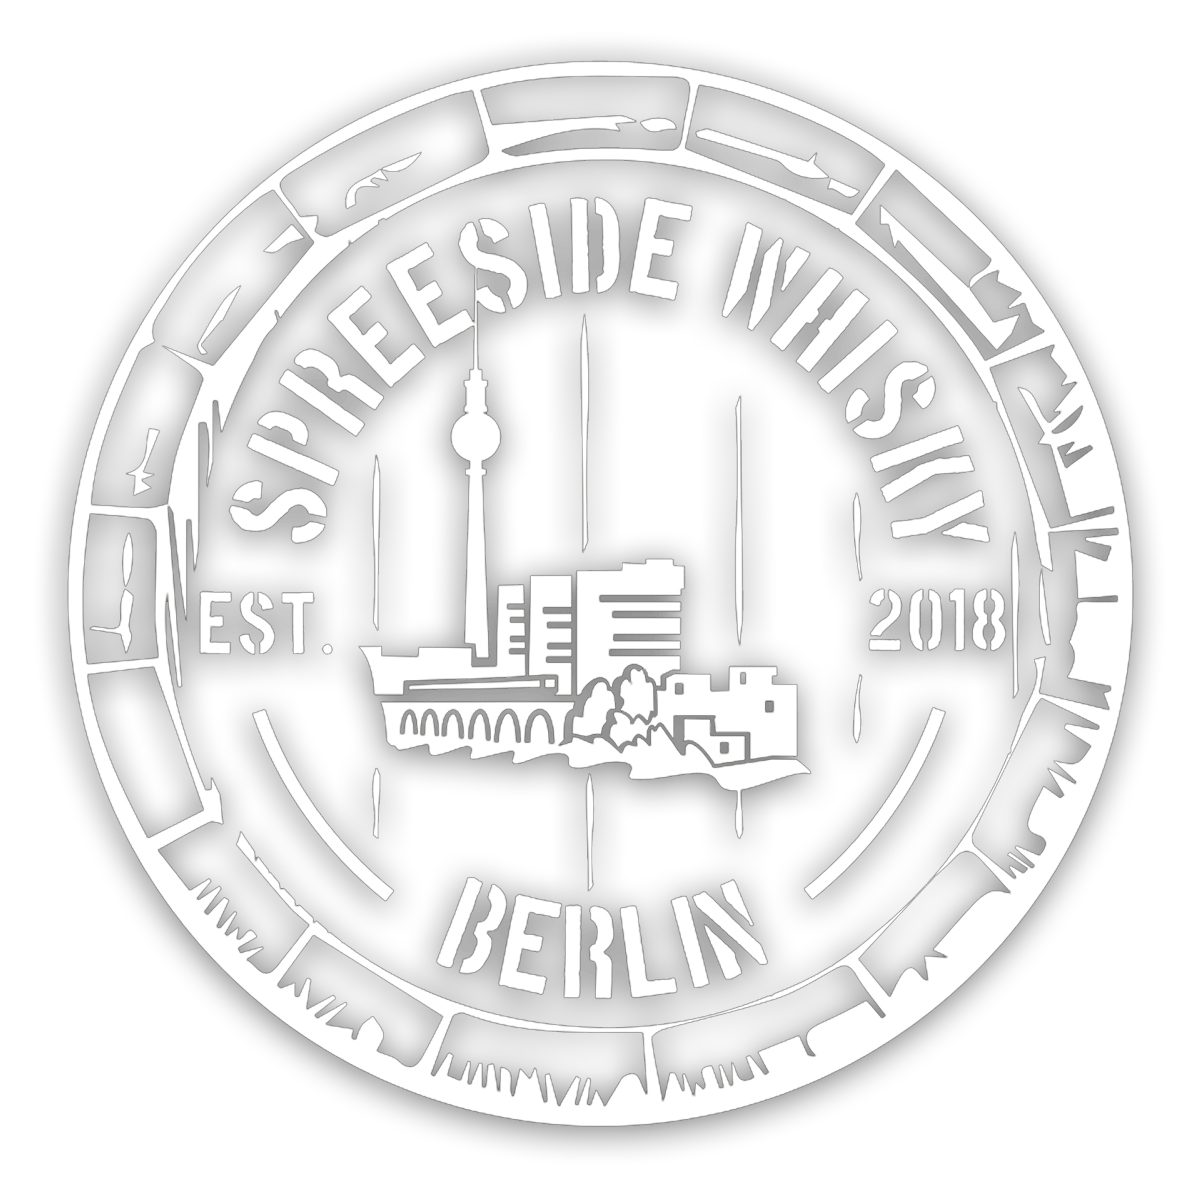 Spreeside Whiskey Messe